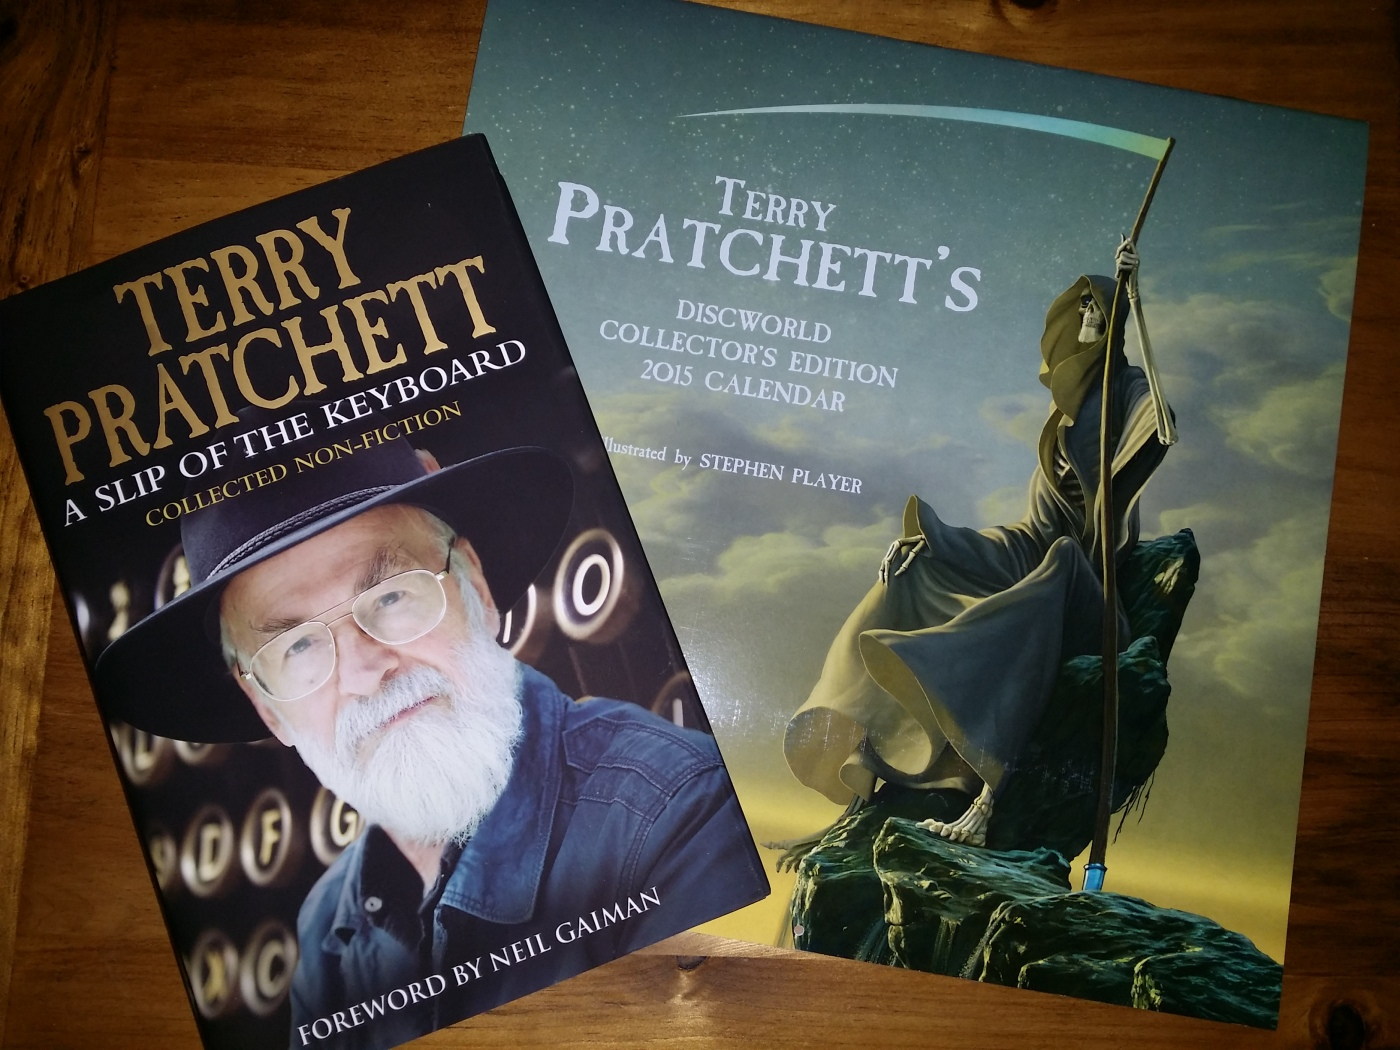 Terry Pratchett book and calender